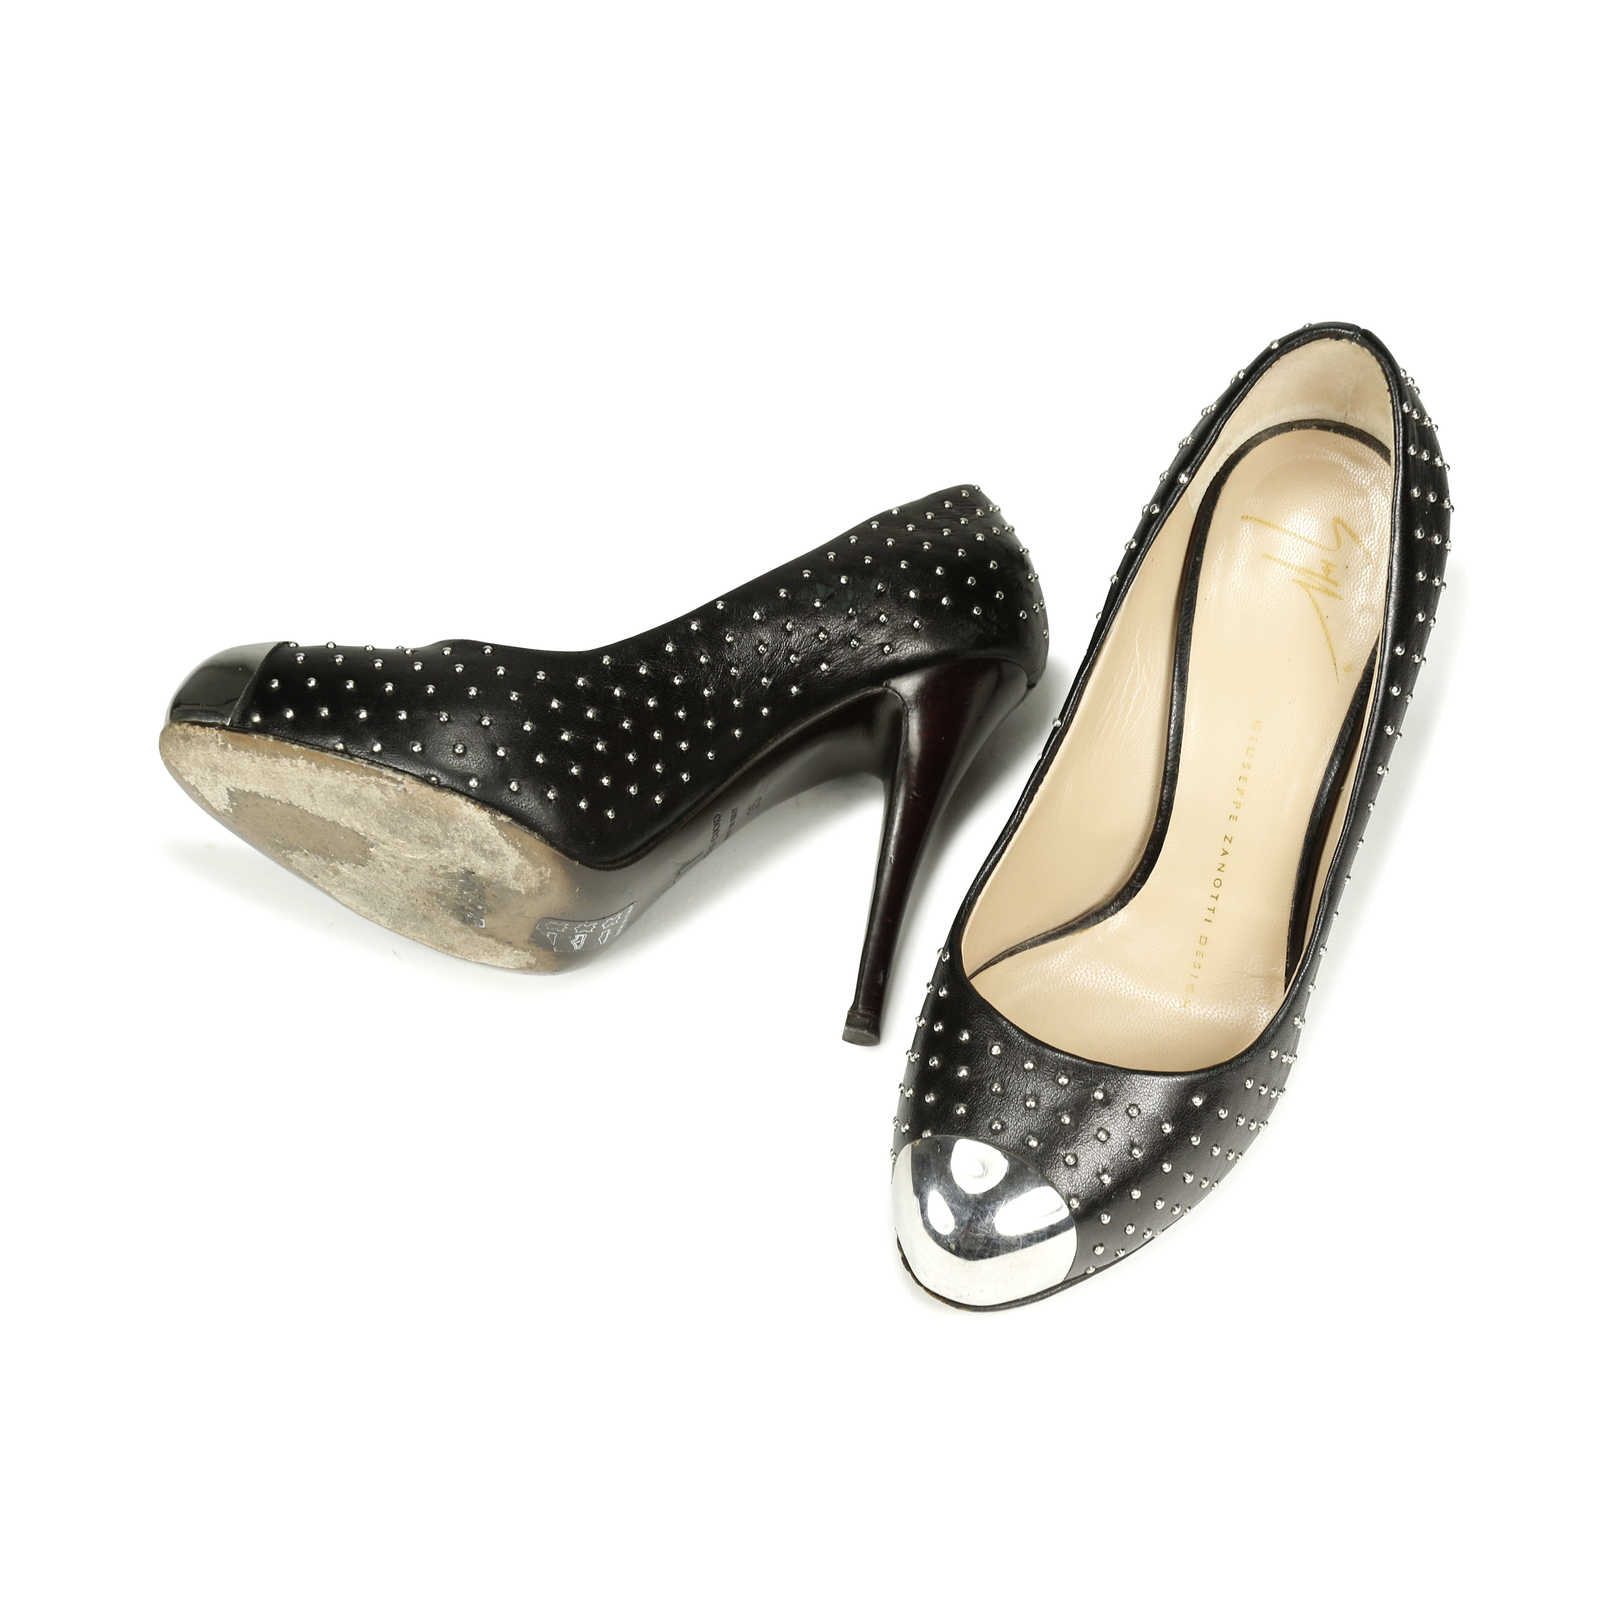 9f383fd8cb8 ... Authentic Second Hand Giuseppe Zanotti Studded Cap Toe Pumps  (PSS-060-00080) ...